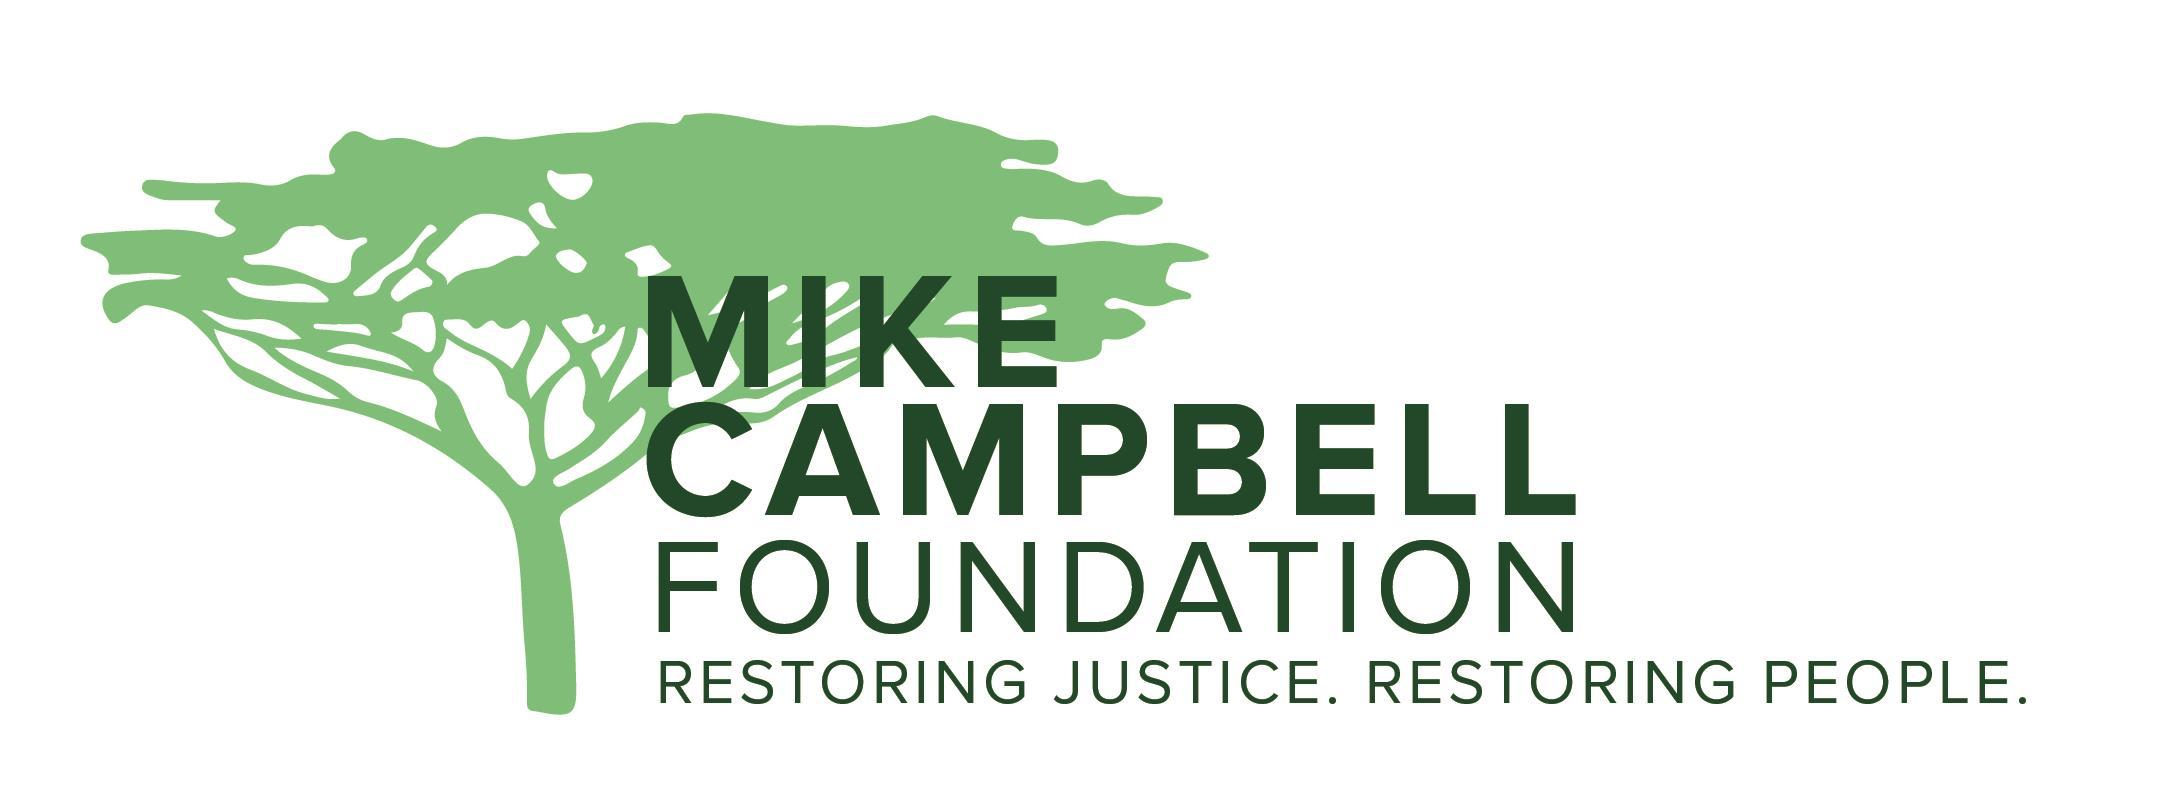 Mike Campbell Foundation